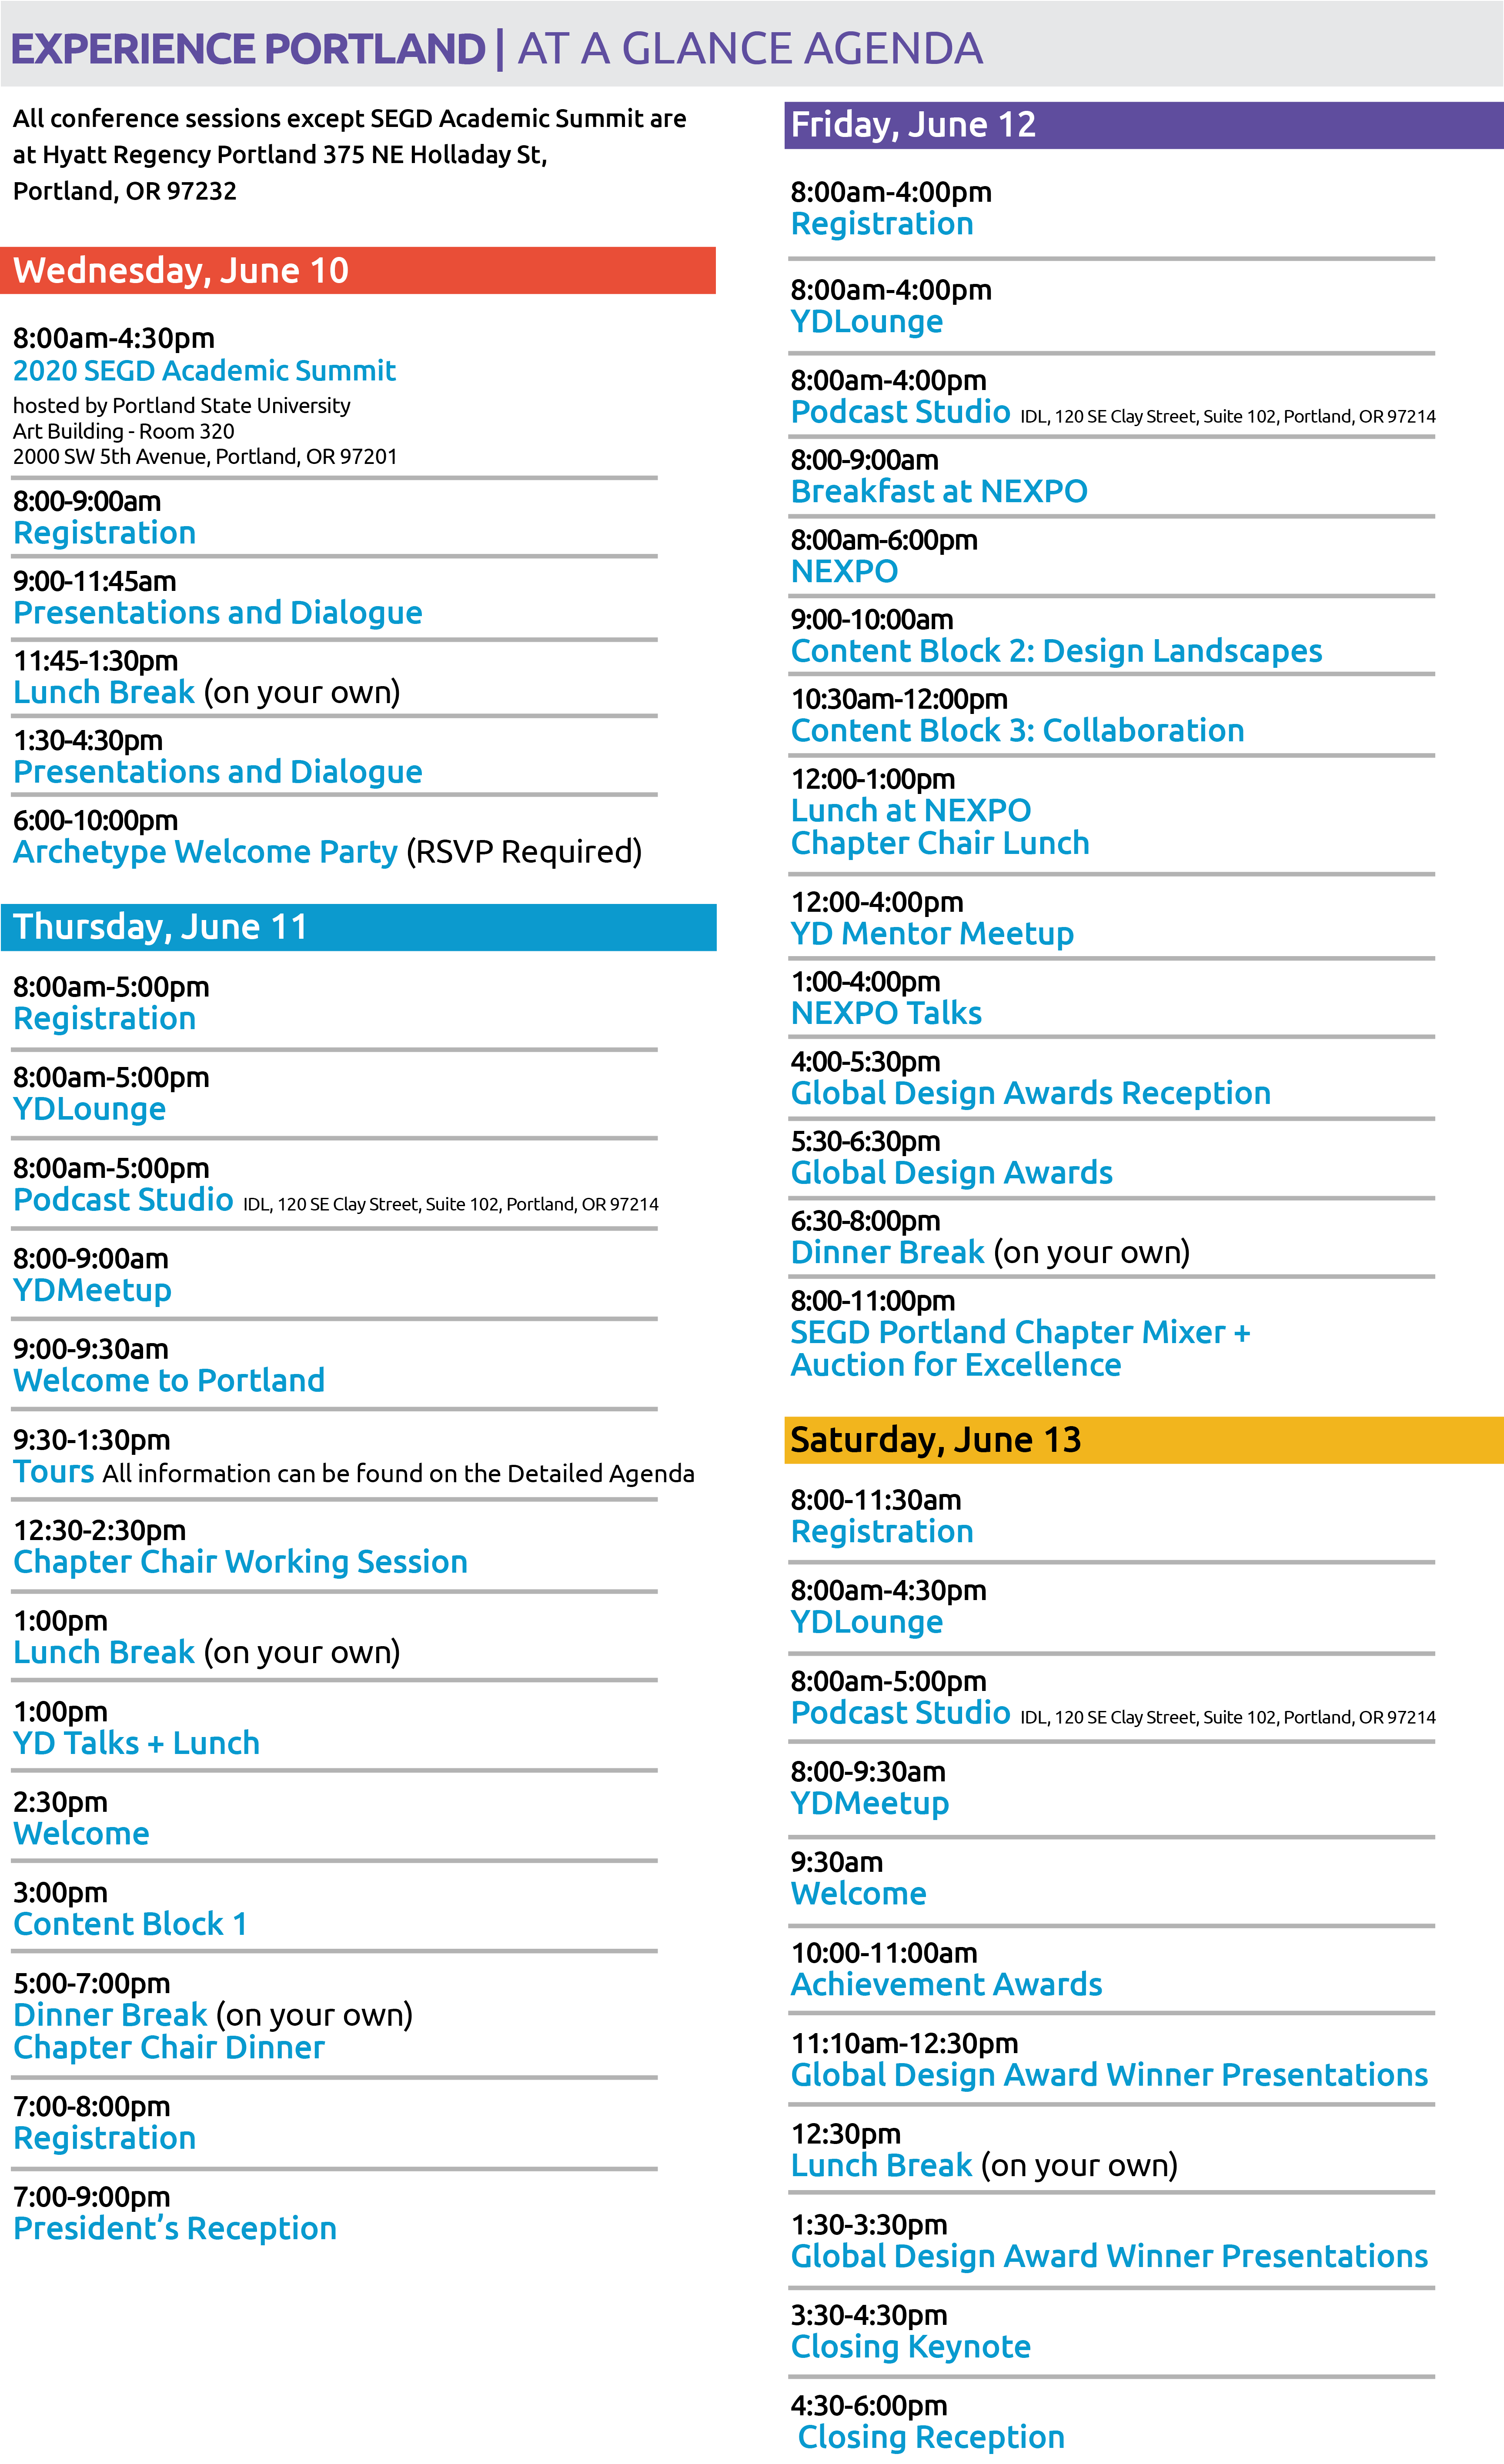 2020 Conference Experience Portland At A Glance Agenda